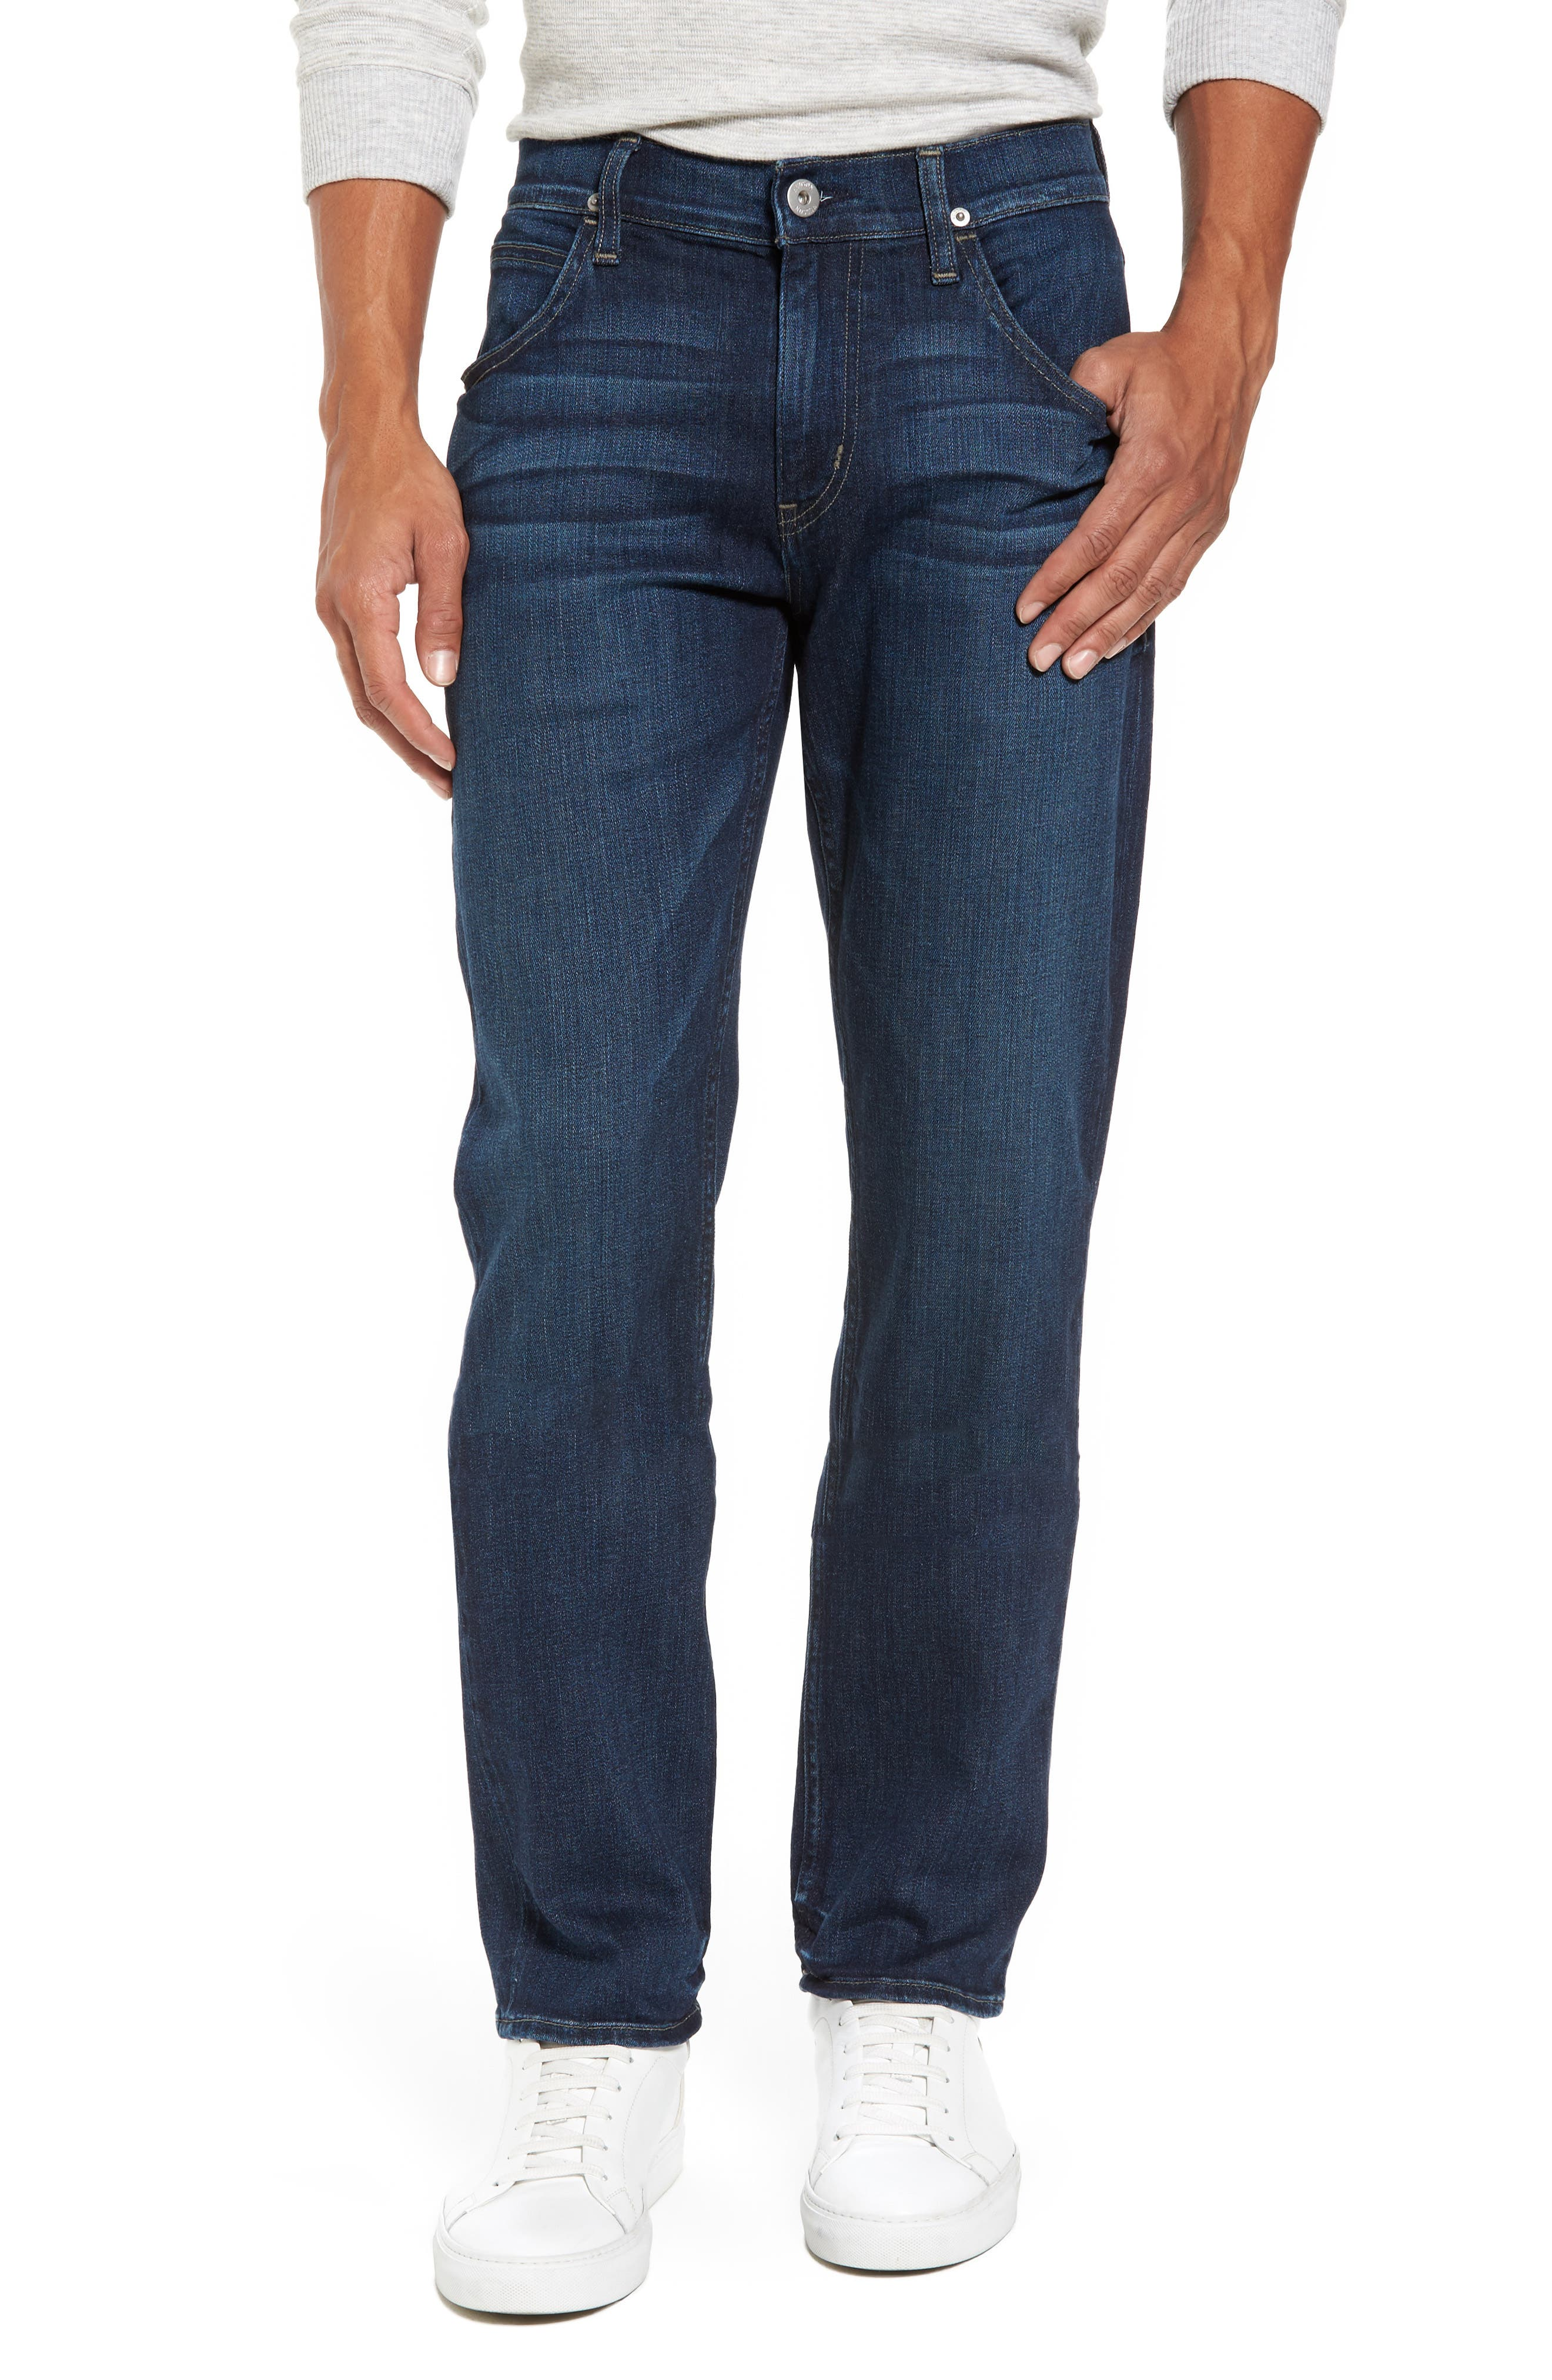 Alternate Image 1 Selected - Hudson Jeans Blake Slim Fit Jeans (Calloway)